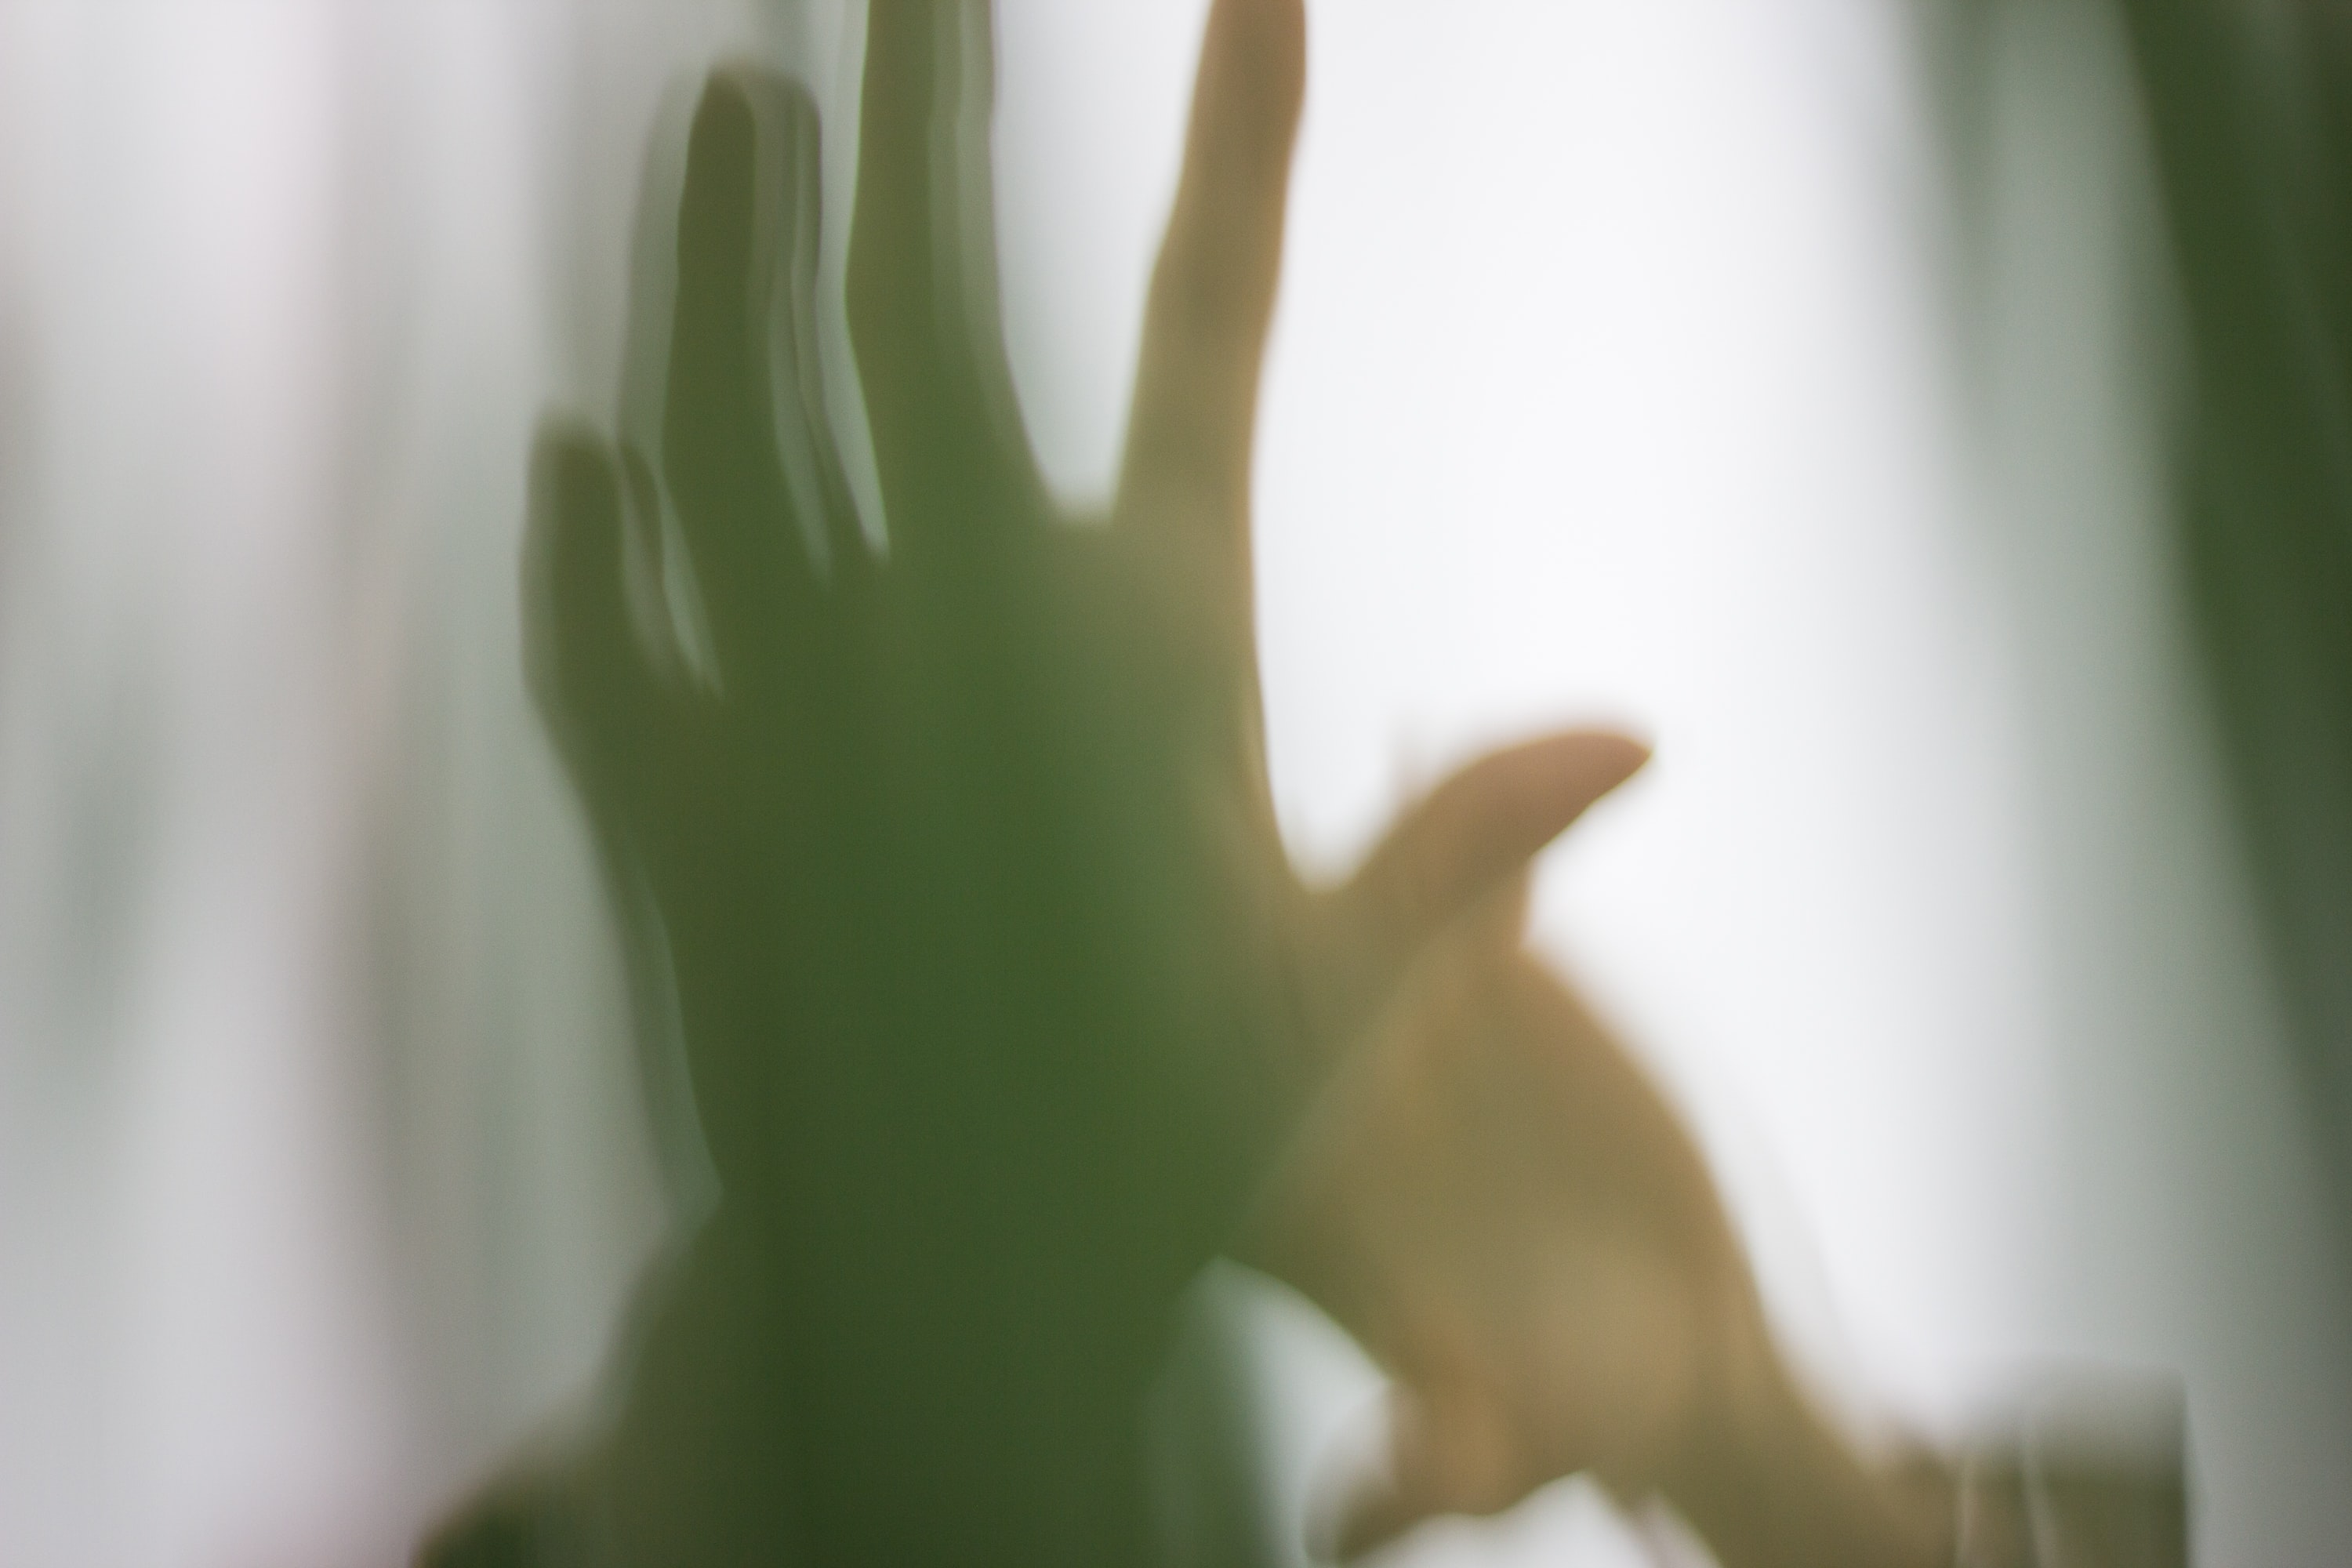 silhouette of person's hand